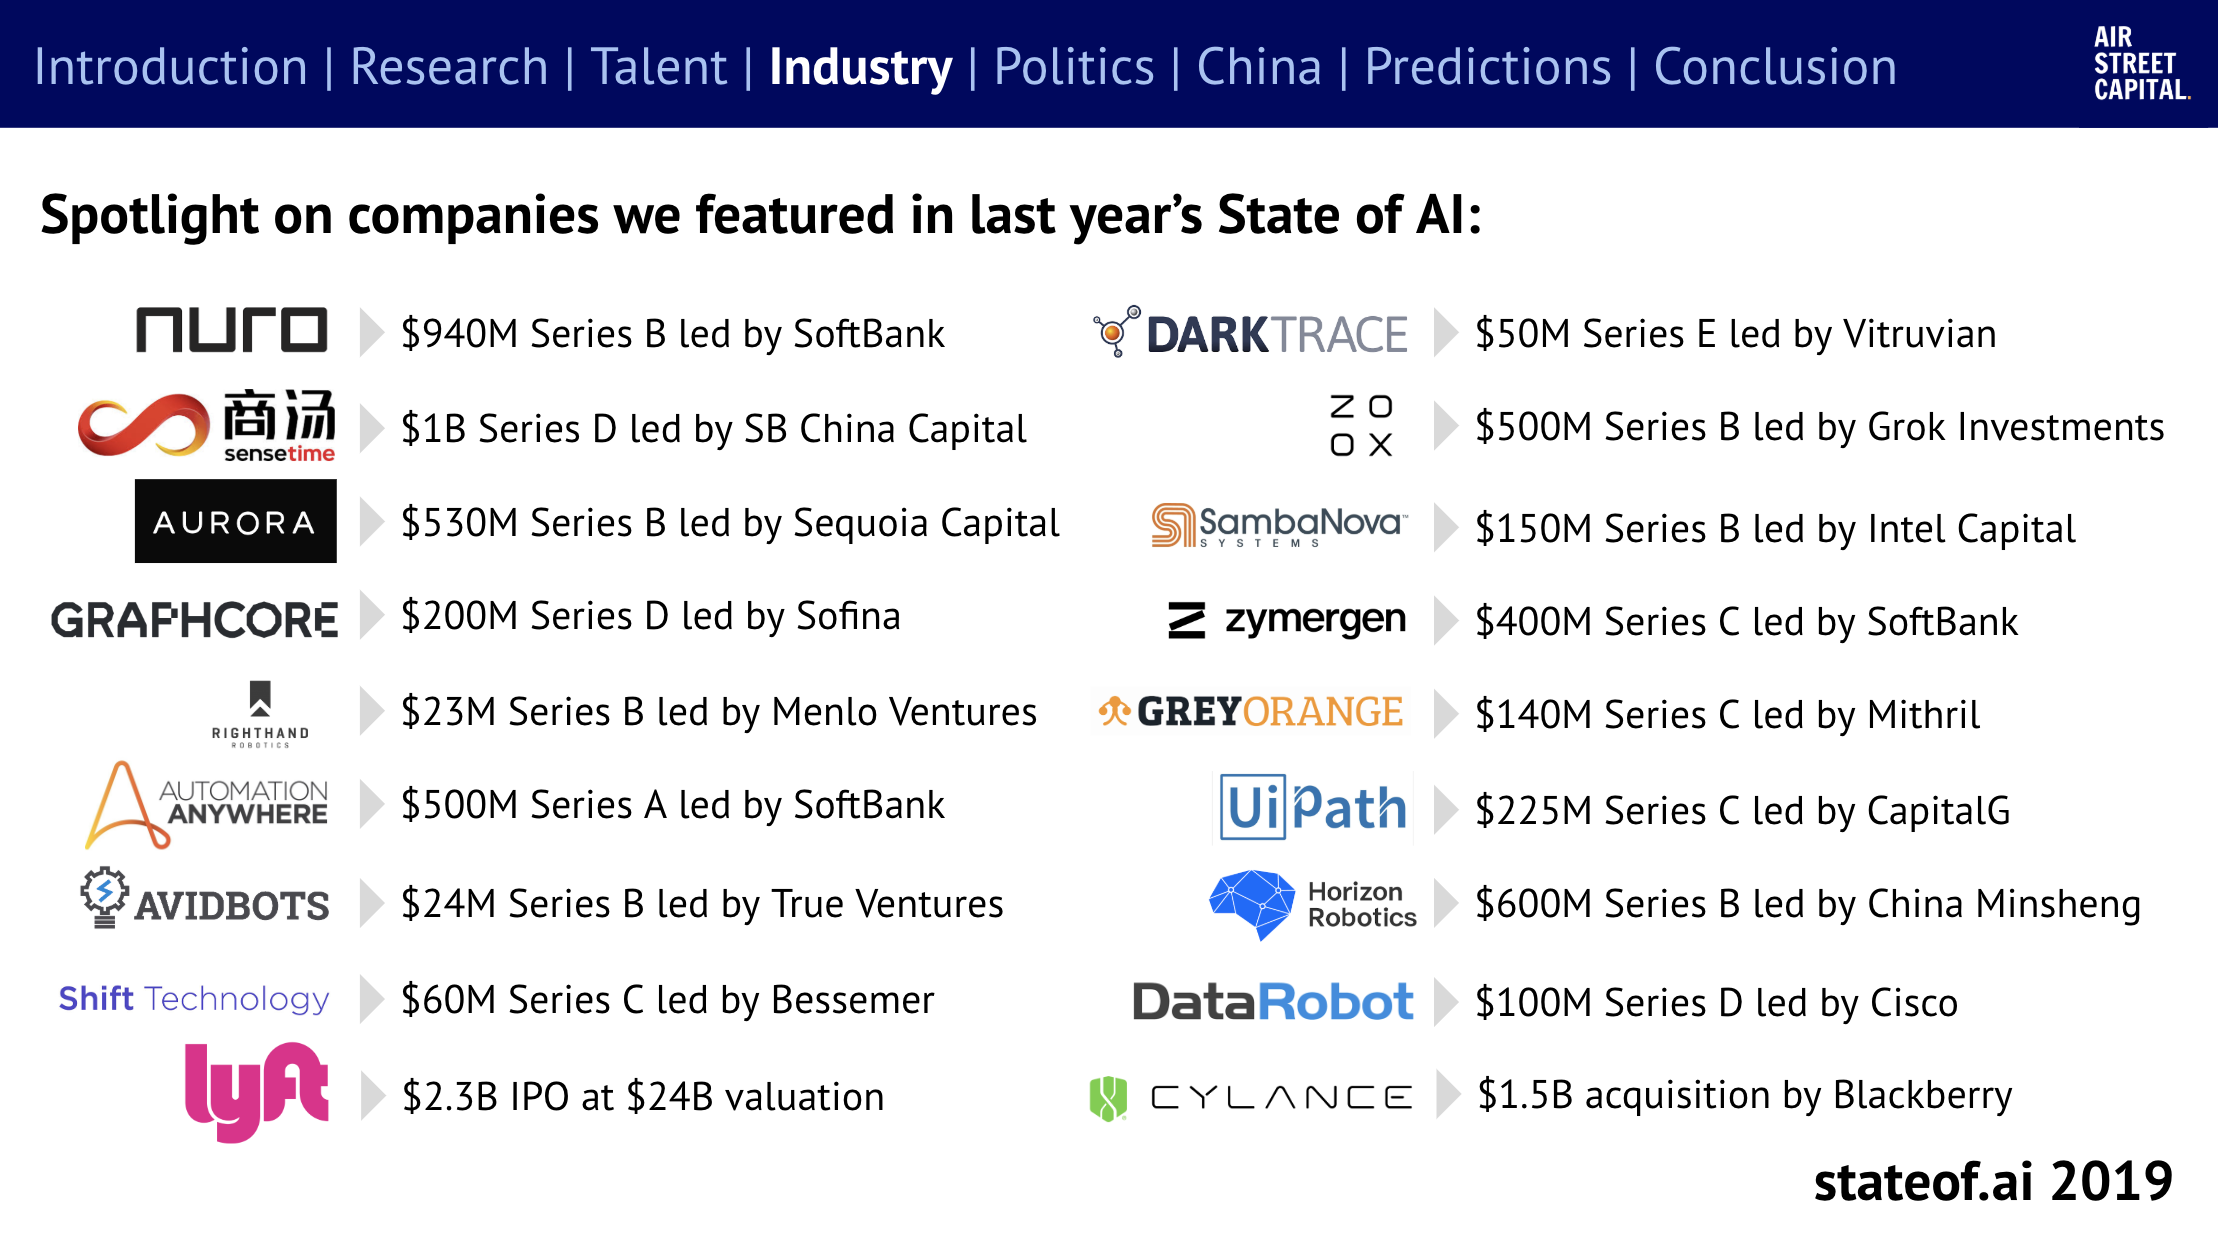 State of AI Report 2019 - investments and acquisitions